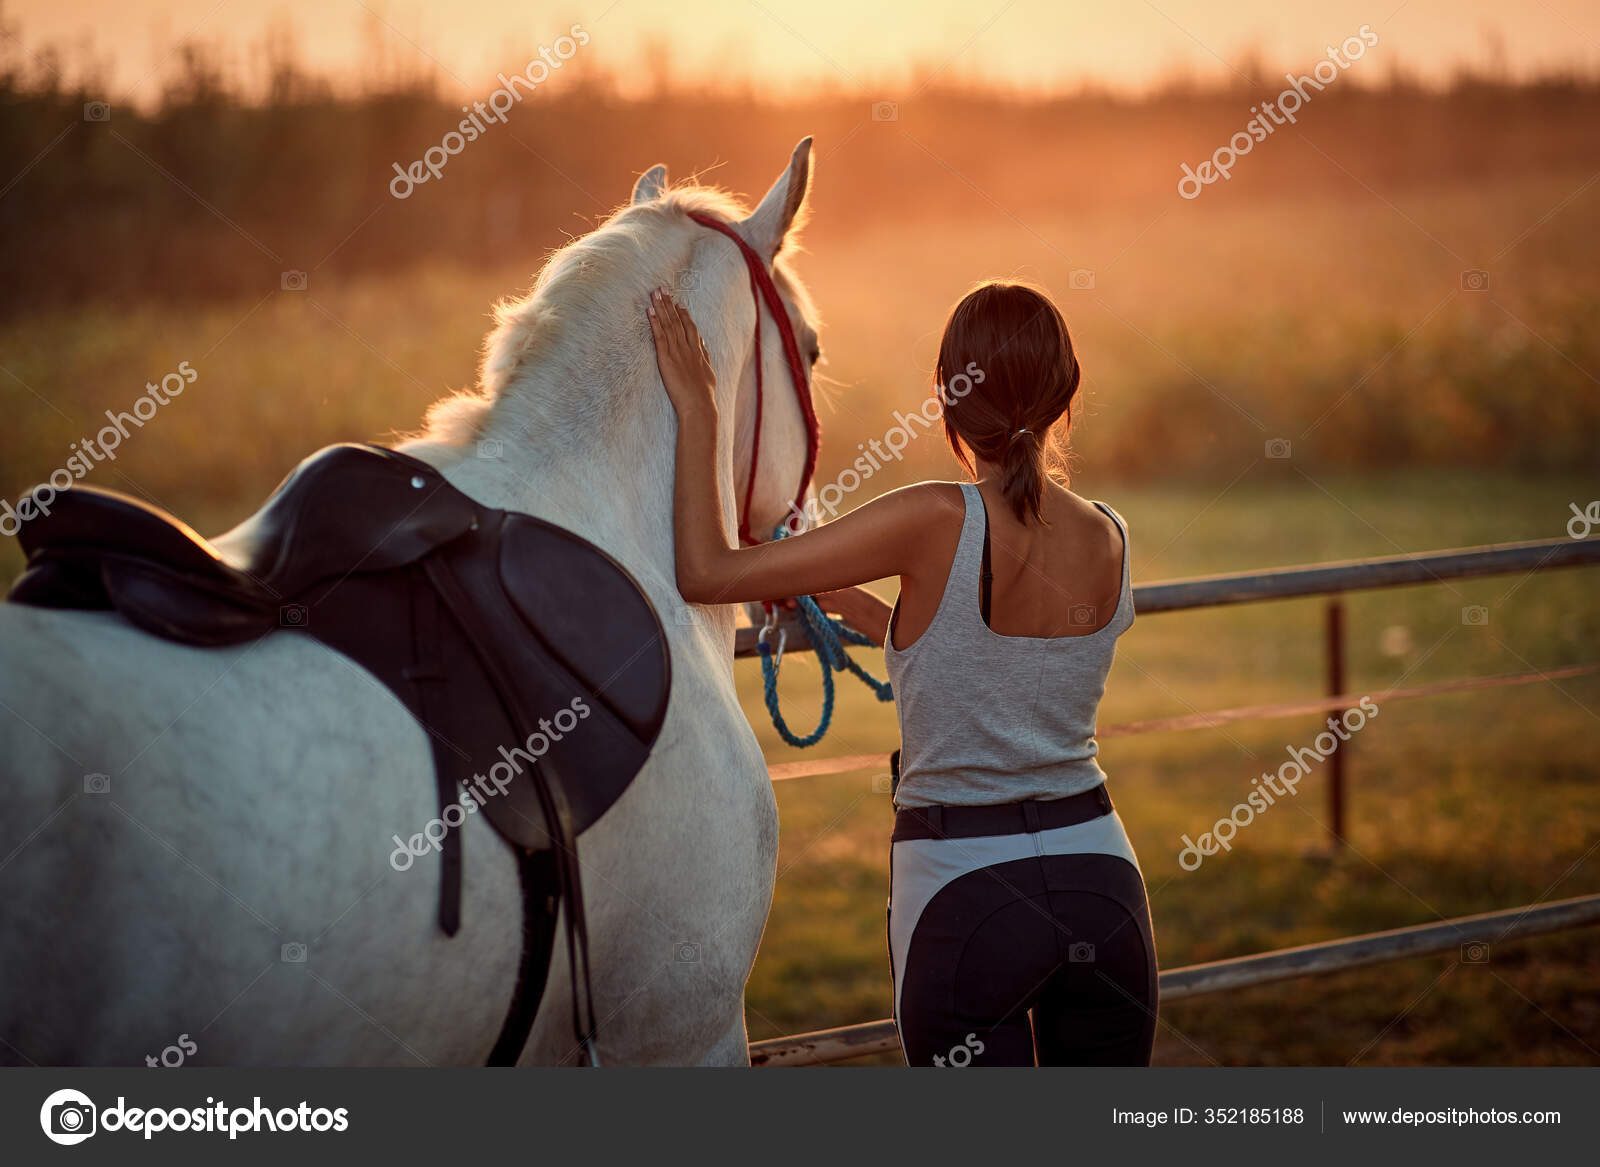 Young Rider Woman Her Beautiful Horse Sunset Stock Photo C Luckybusiness 352185188